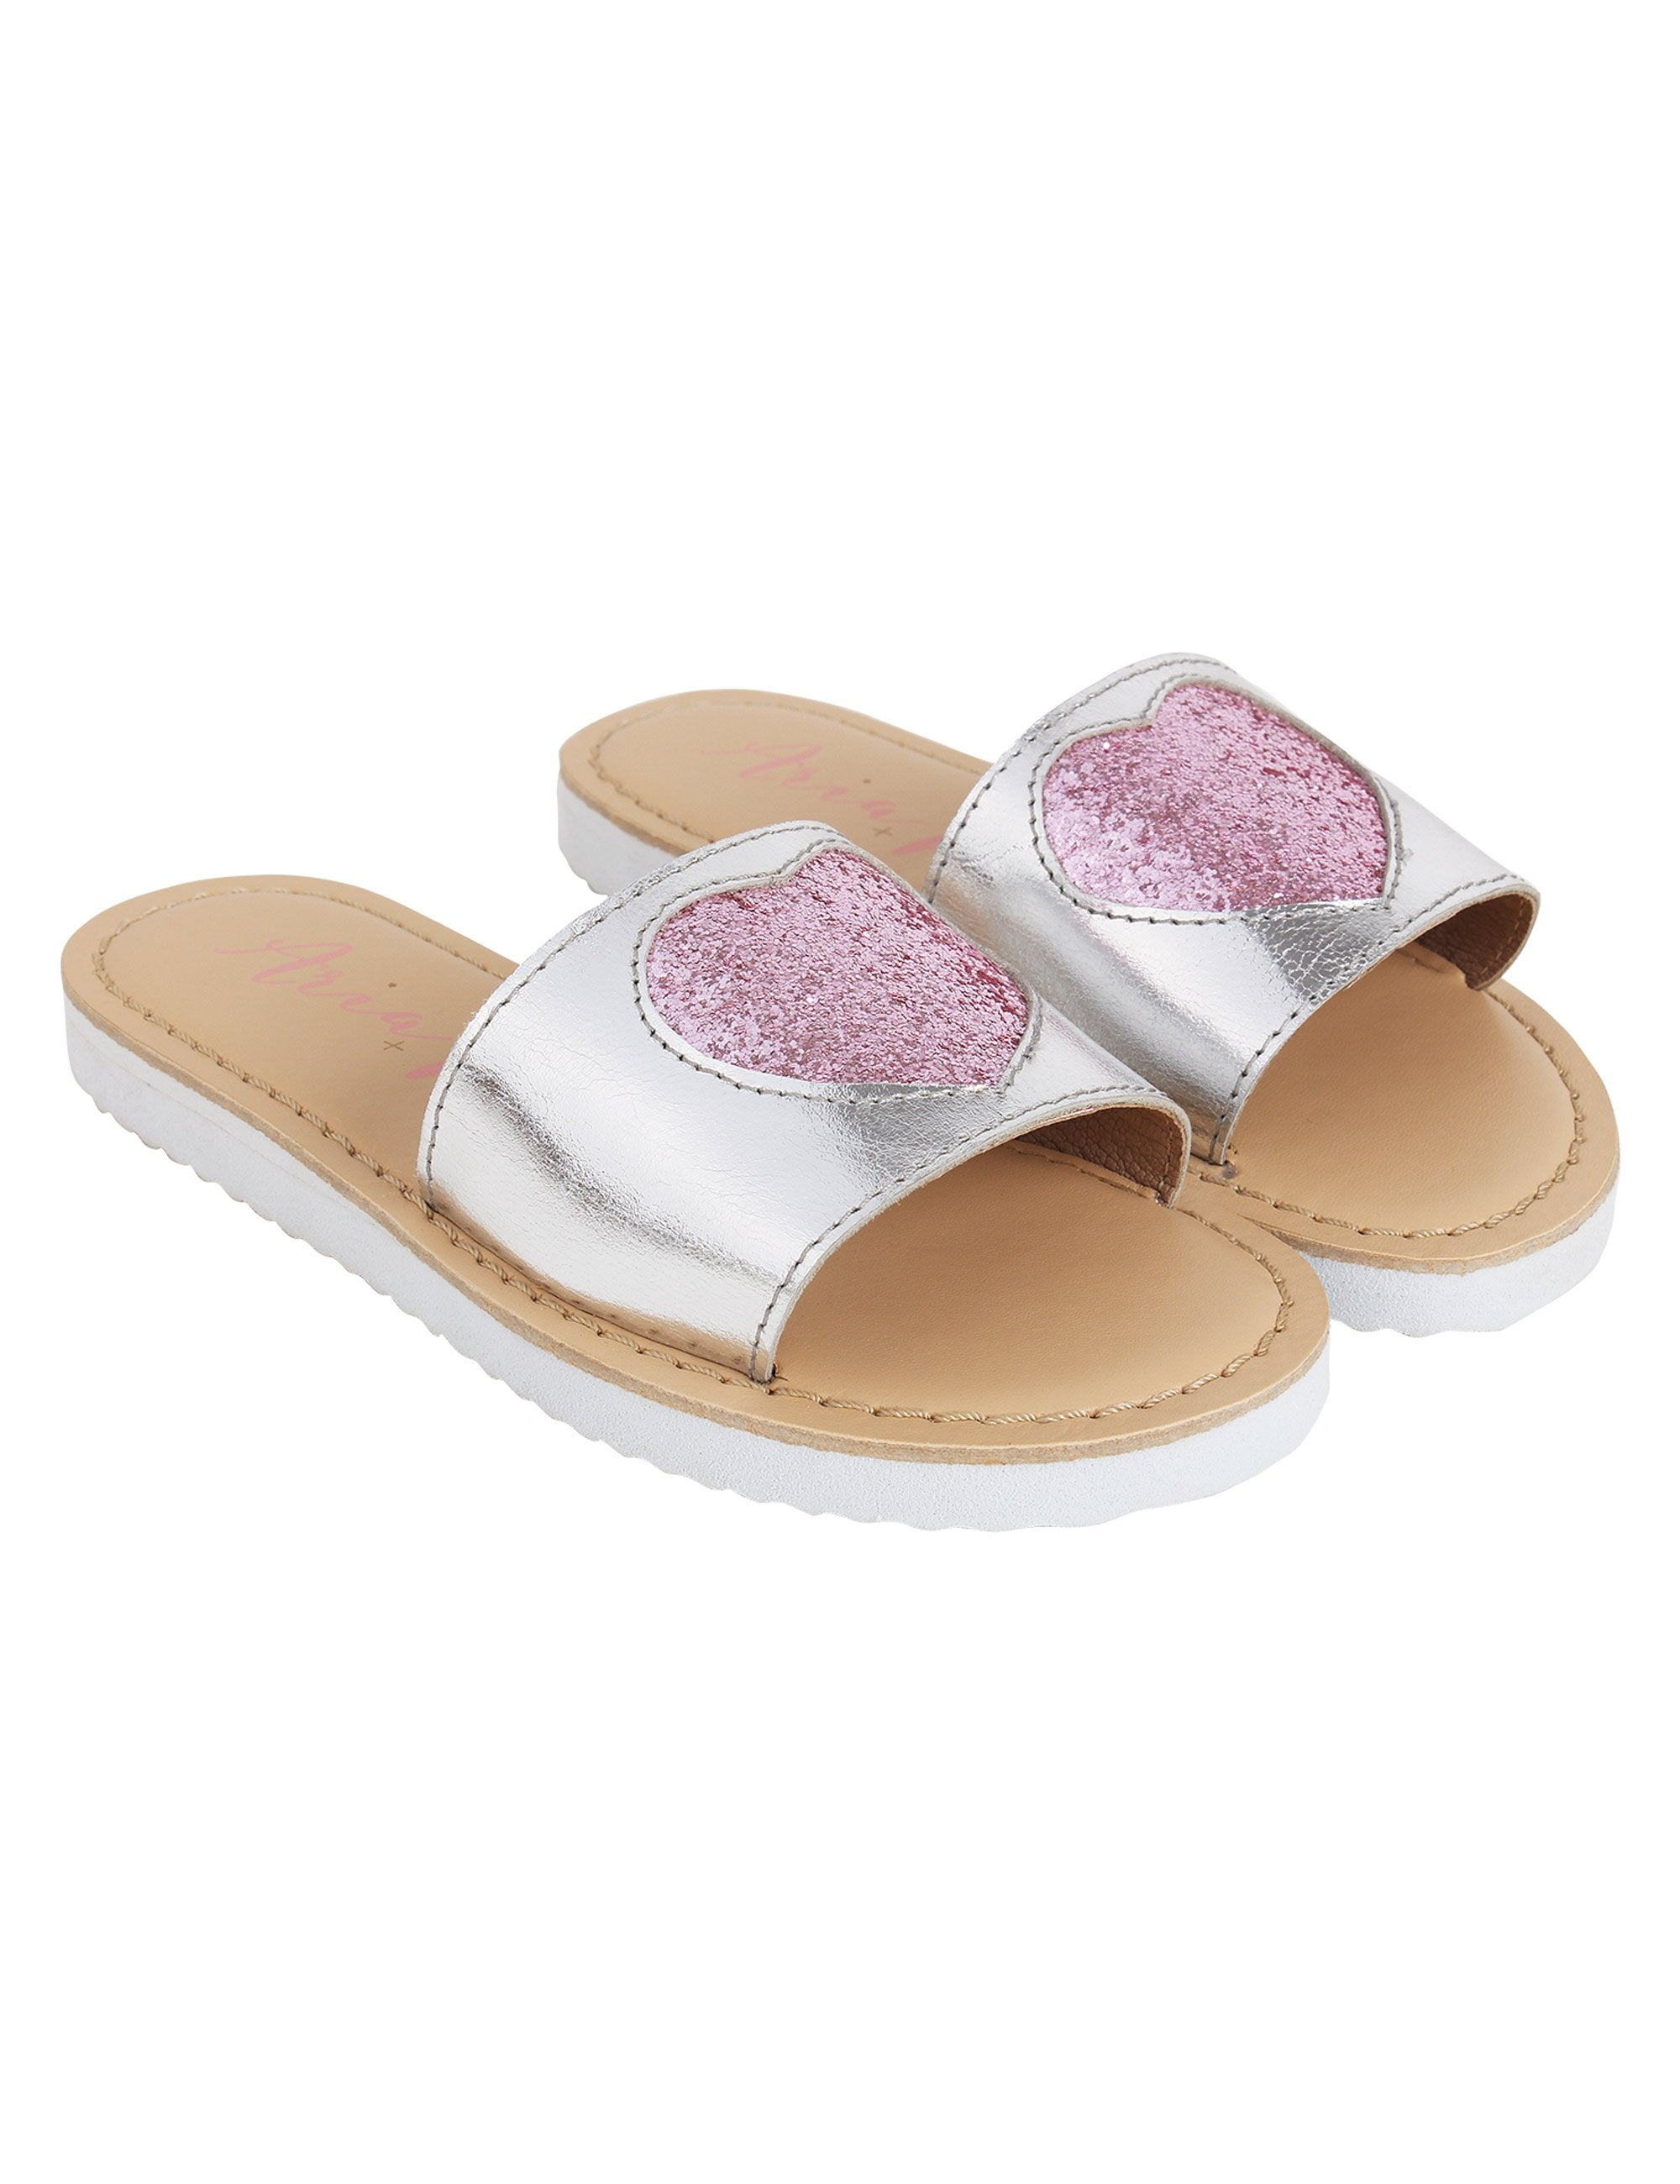 Heart Flats for Girls